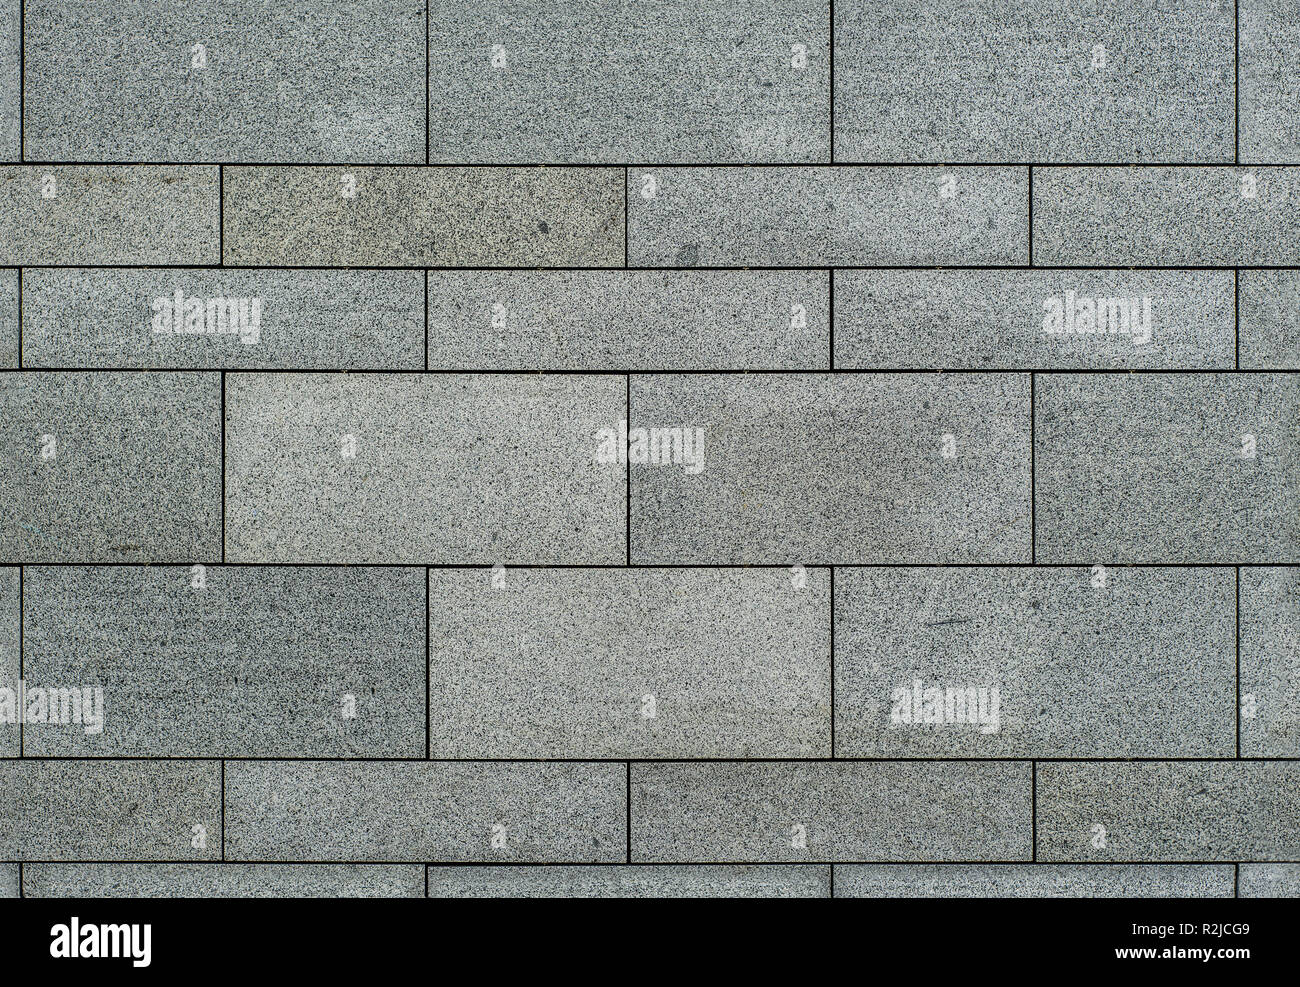 Grey Marble Wall Tiled Texture From Ussr Time And Seamless Pattern Stock Photo Alamy